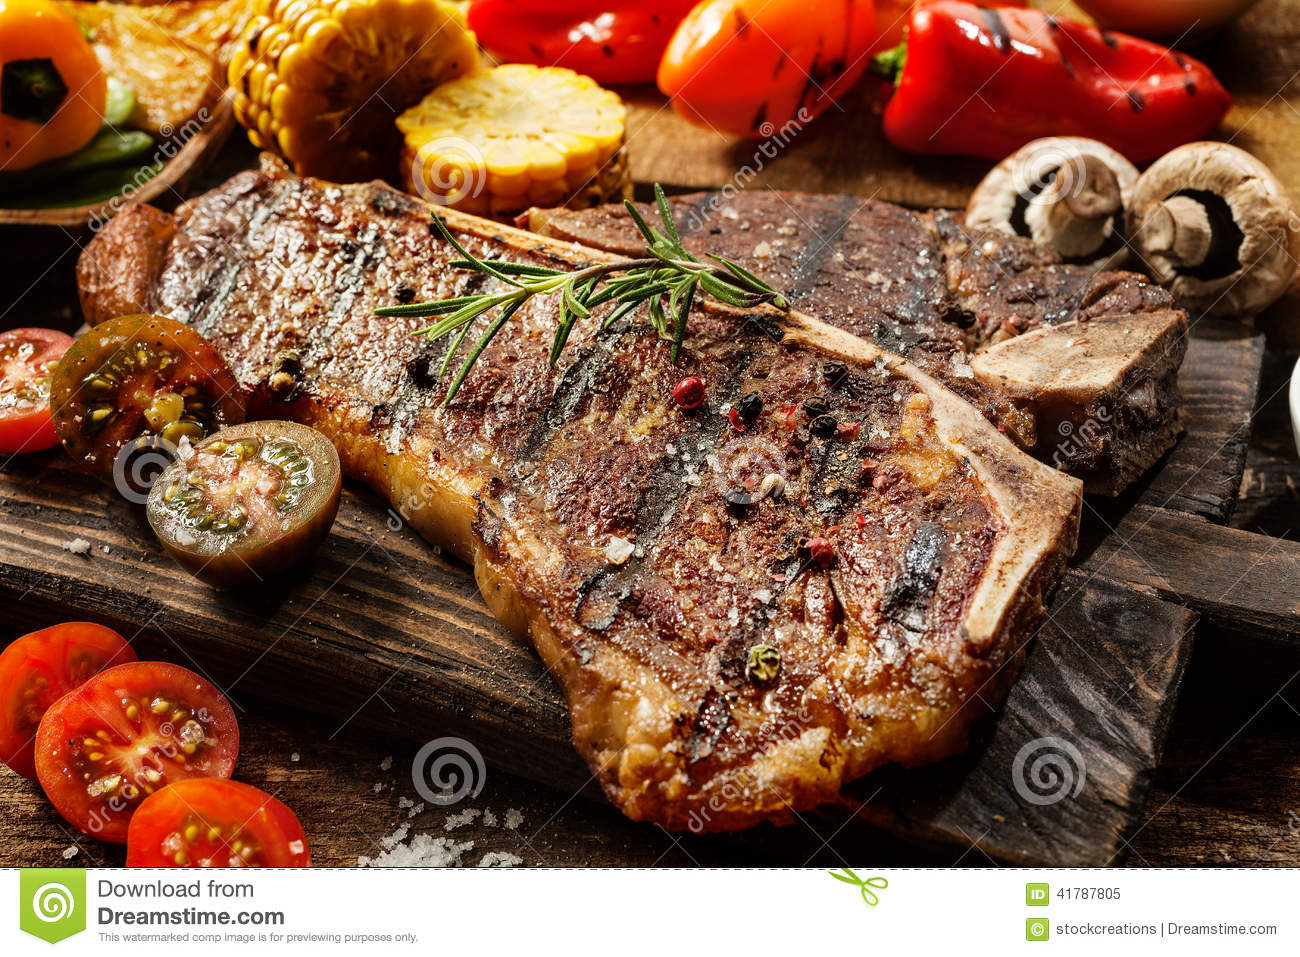 Succulent tender grilled porterhouse steak